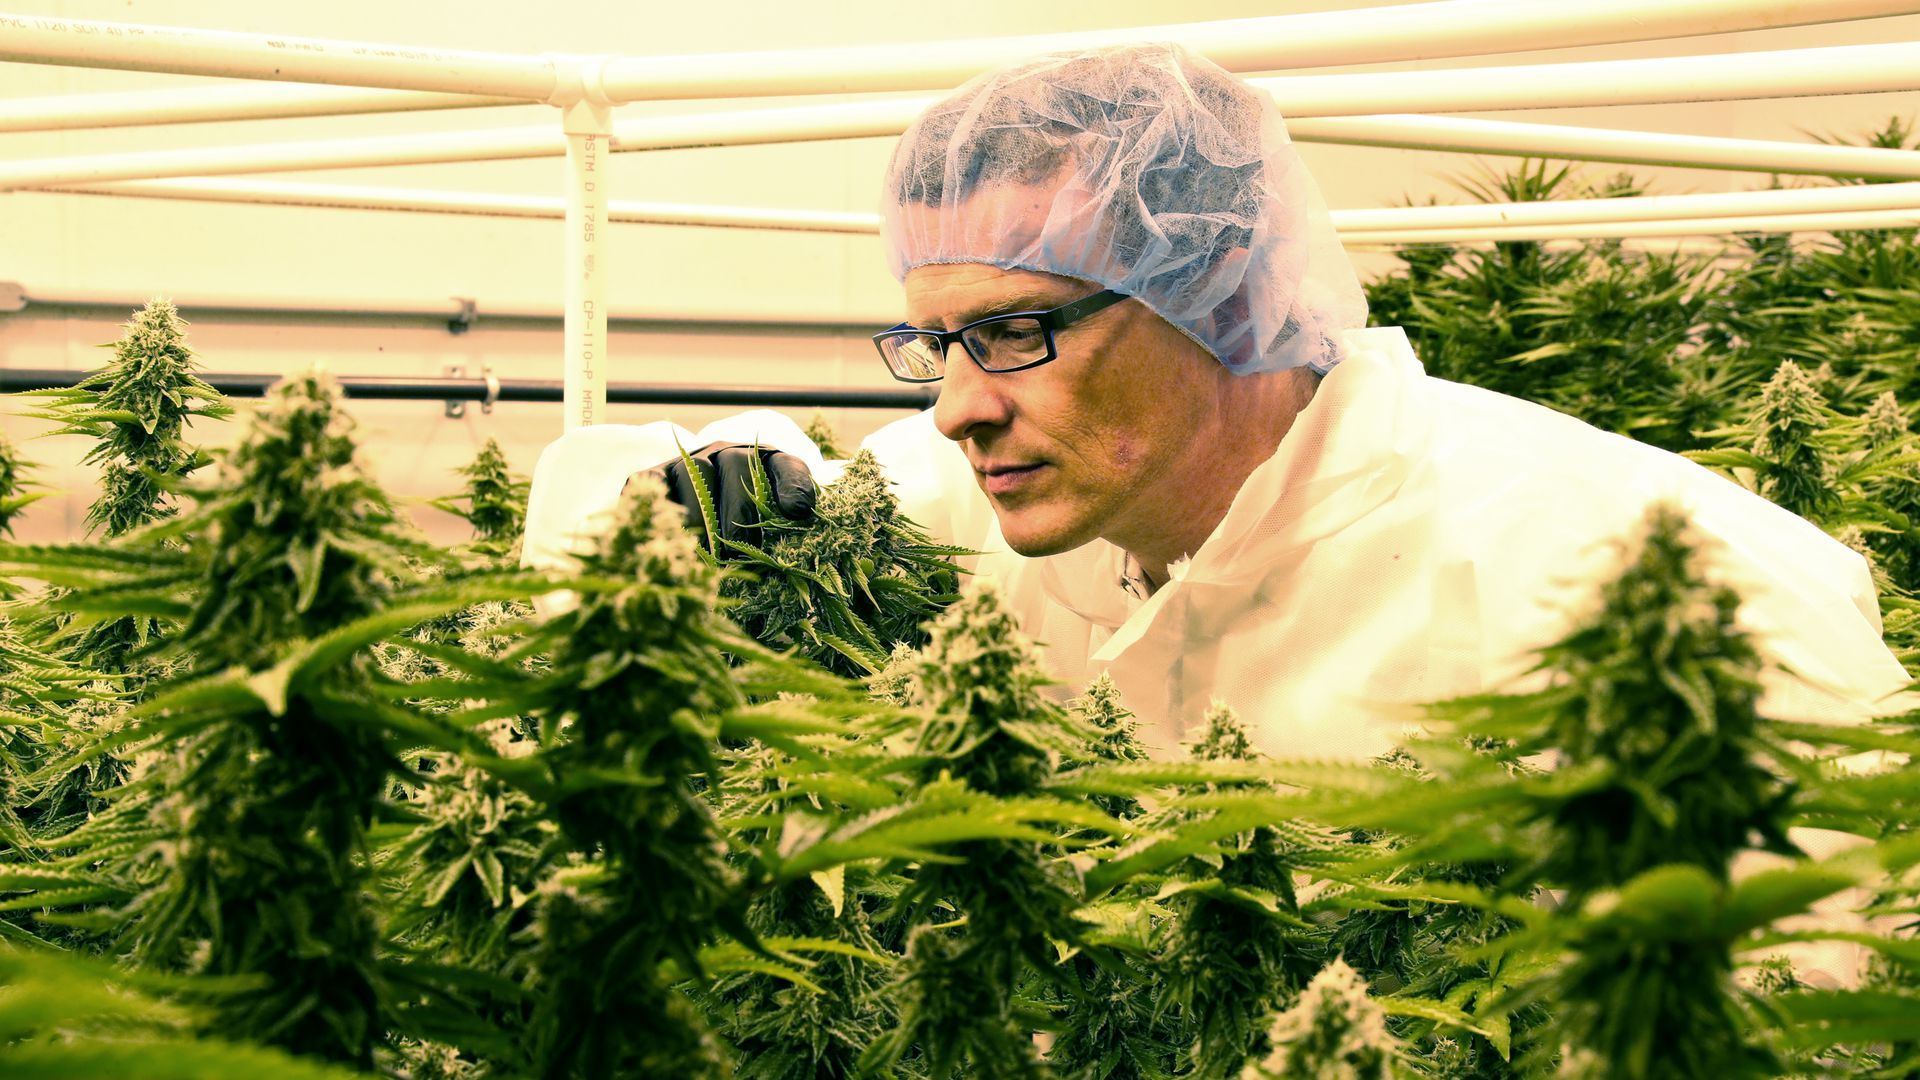 Mike Dundas, CEO of Sira Naturals, looks over plants at the company's facility in Milford, MA